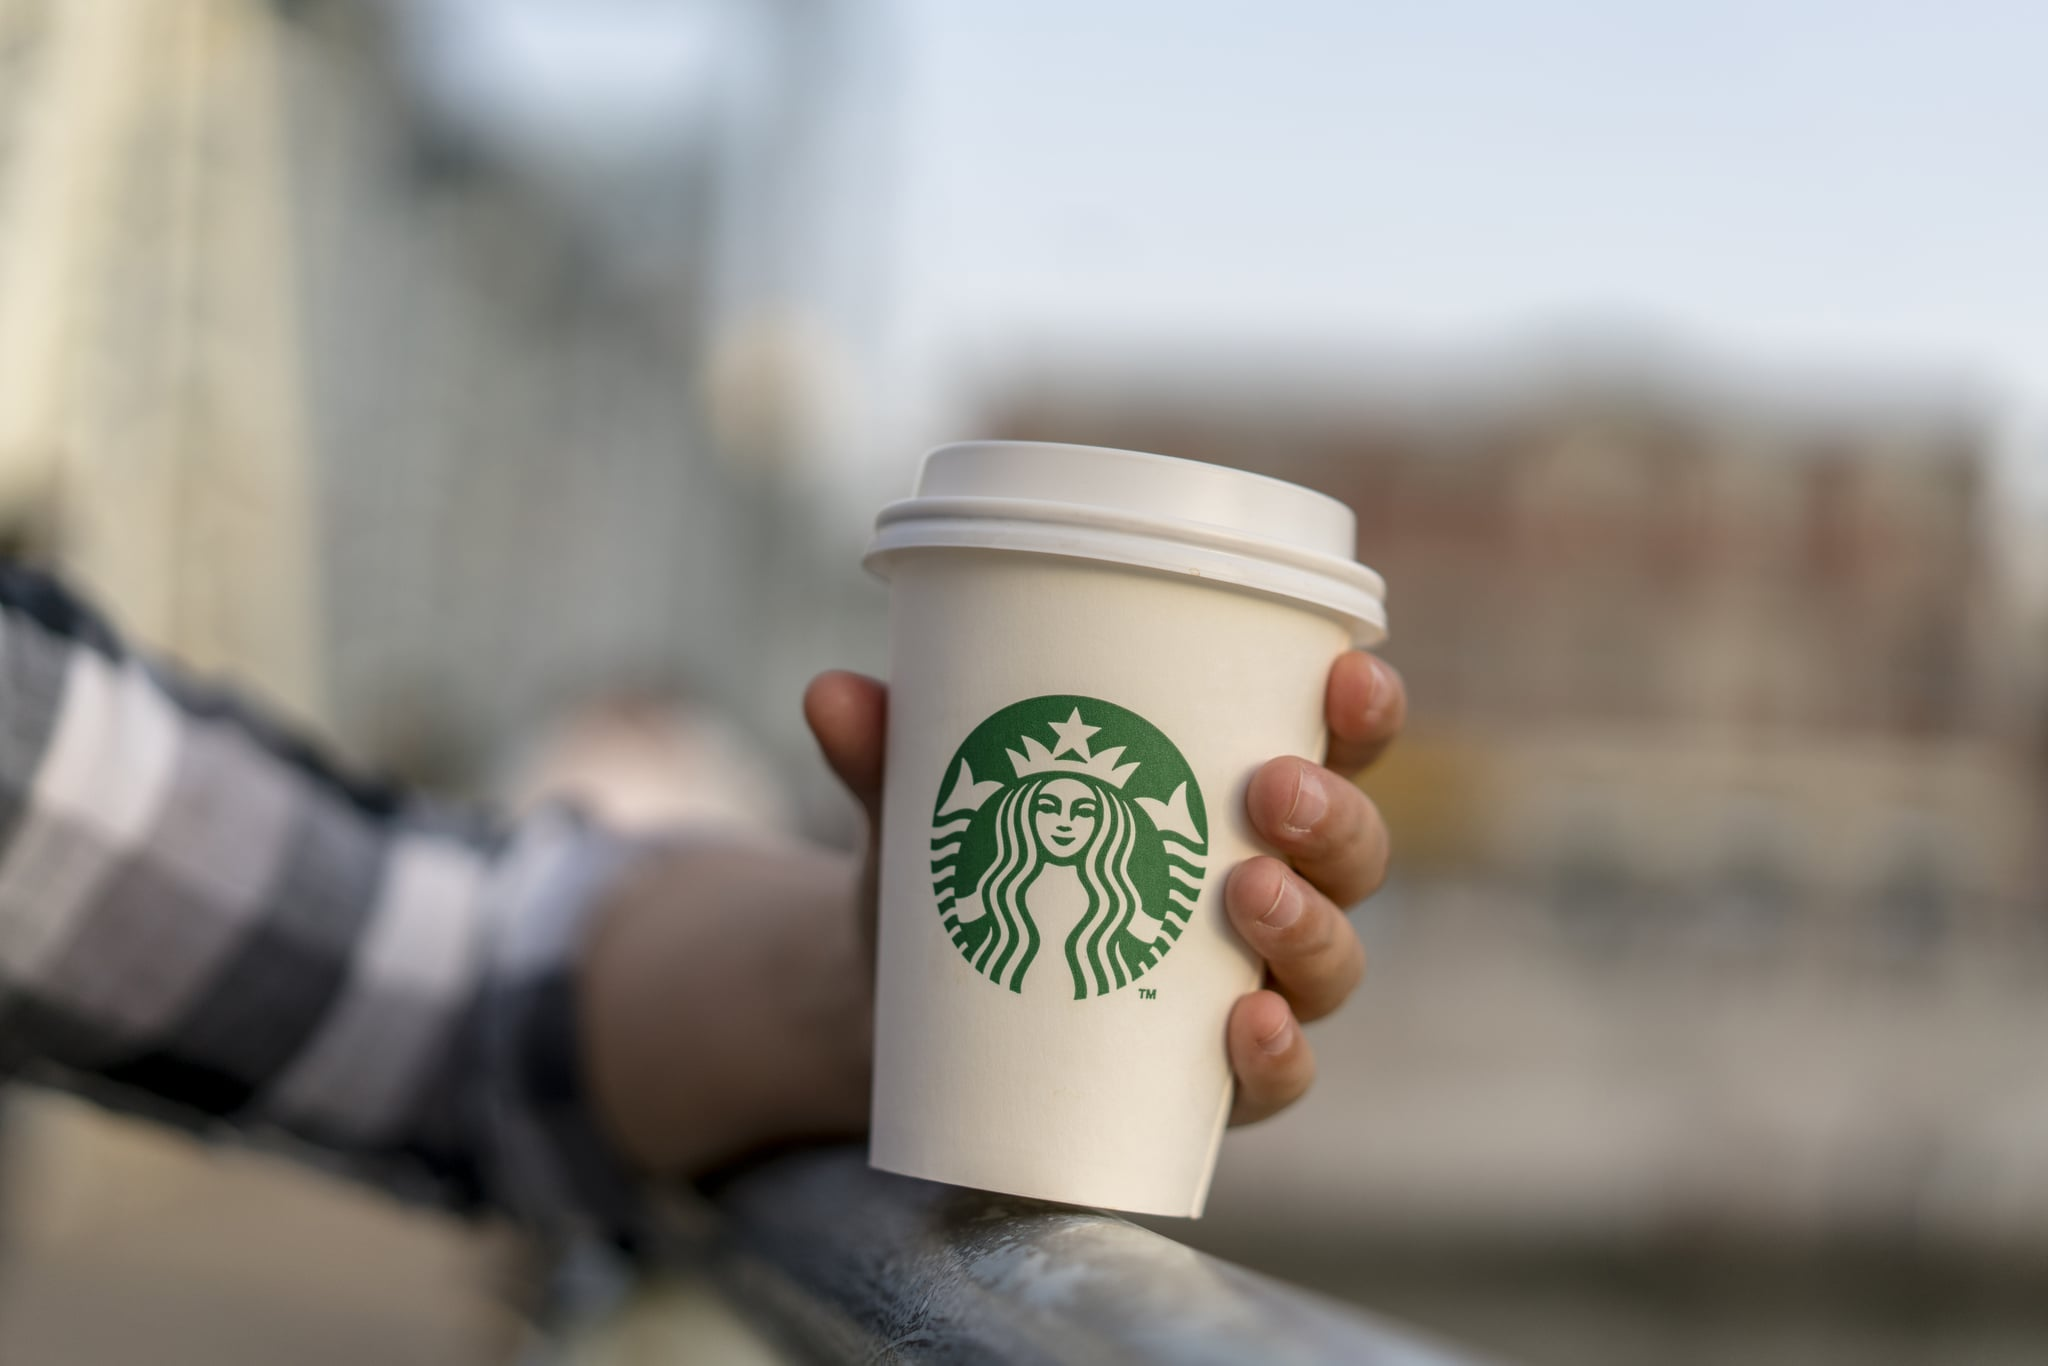 TIANJIN, CHINA - 2017/04/29: A girl holds a Starbucks coffee cup on a bridge.  Starbucks cup. According to the report of the second quarter in 2017, the revenue of Starbucks was $5.3 billion, and the sales growth rate of both the global and the United States are 3%, while in China the number is 7%, which might become the main contributor to the growth of Starbucks in 2017. (Photo by Zhang Peng/LightRocket via Getty Images)